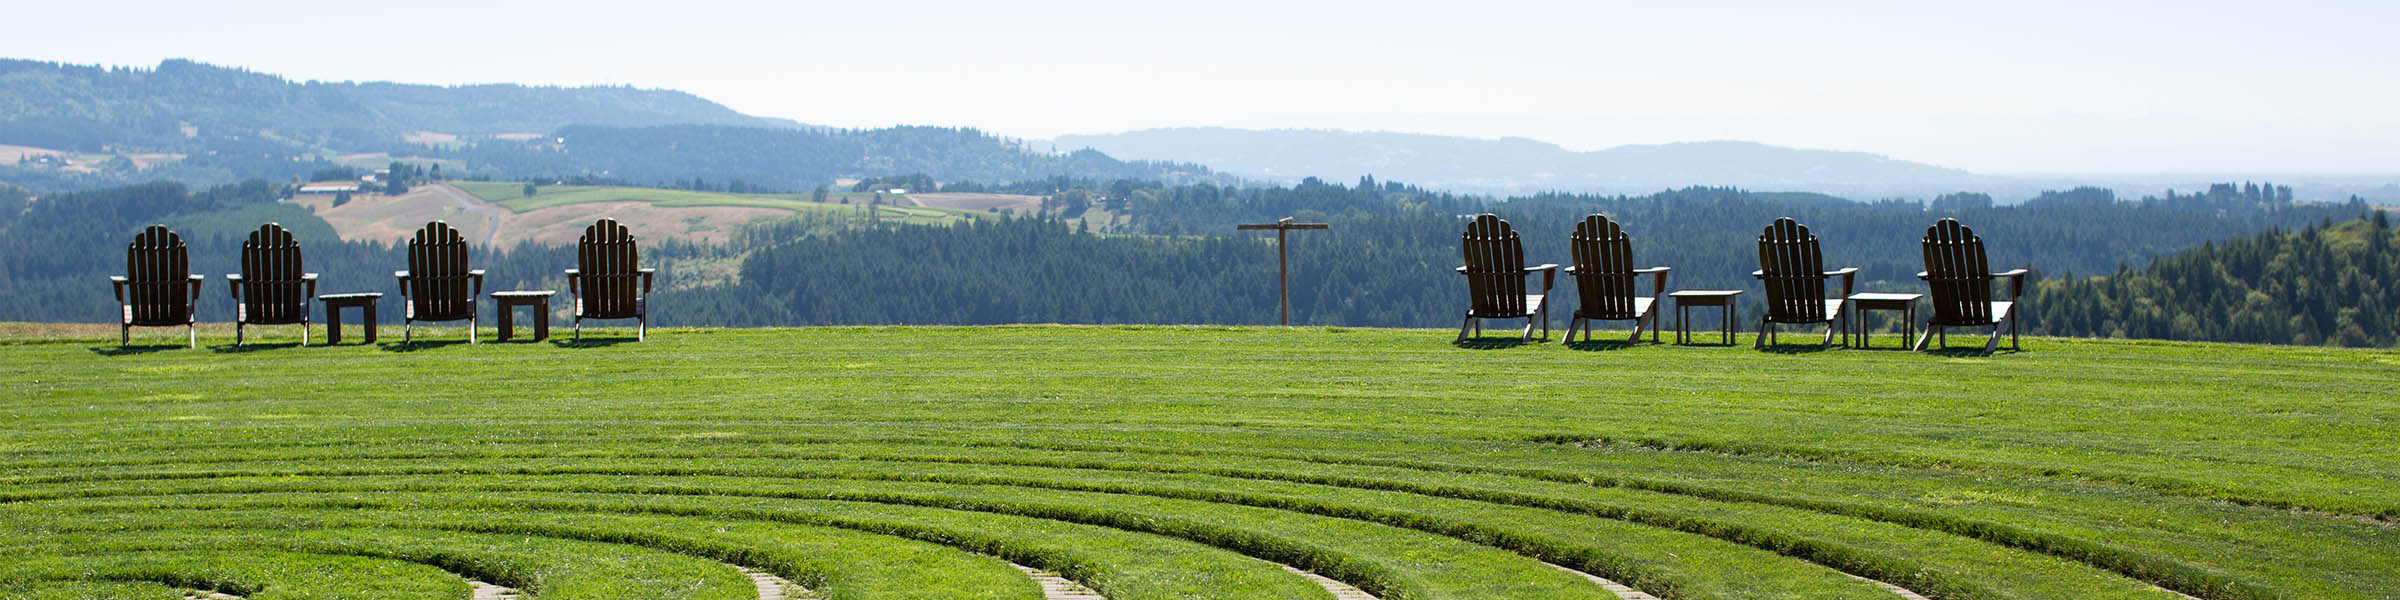 Chairs outside the Labyrinth at Fairsing Vineyard sit idle beneath the summer sun in Oregon's Willamette Valley